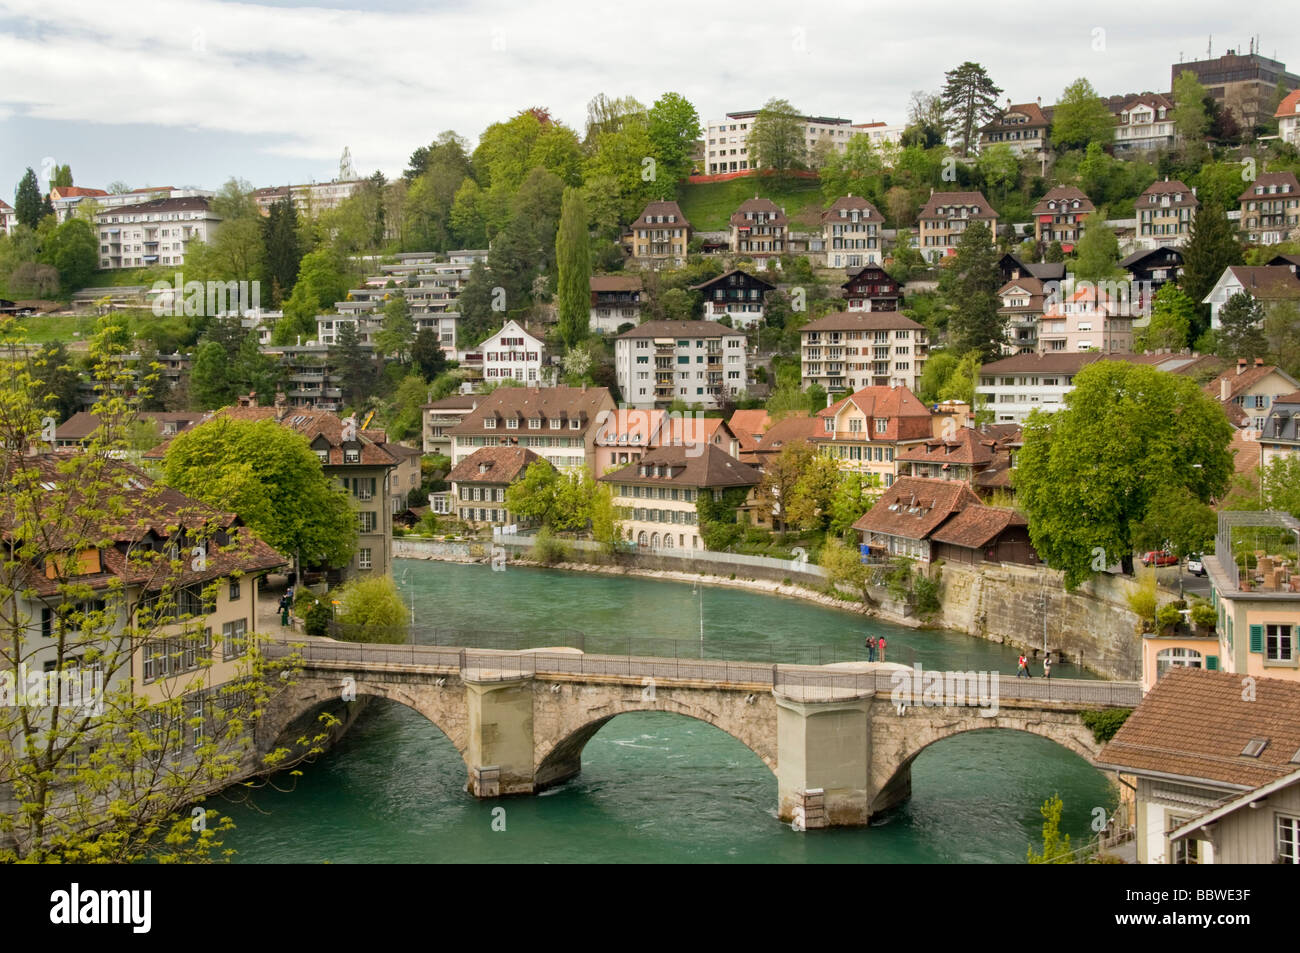 Old Bern and Aare River, Switzerland - Stock Image